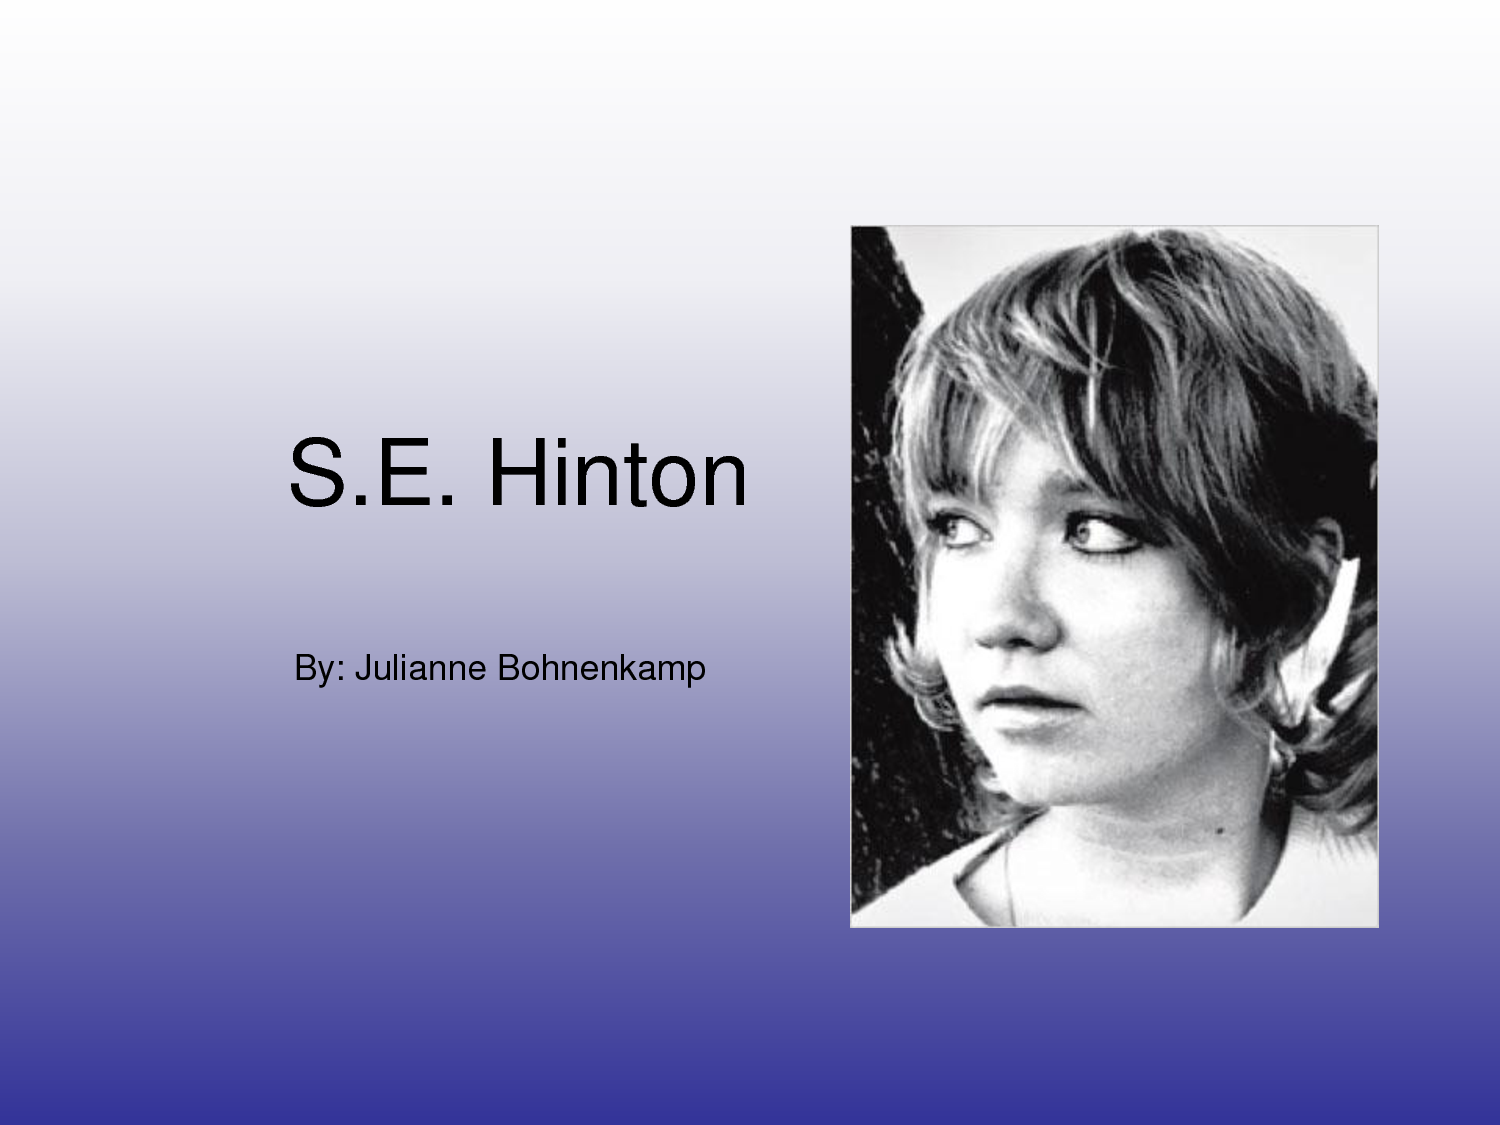 S. E. Hinton's quote #2